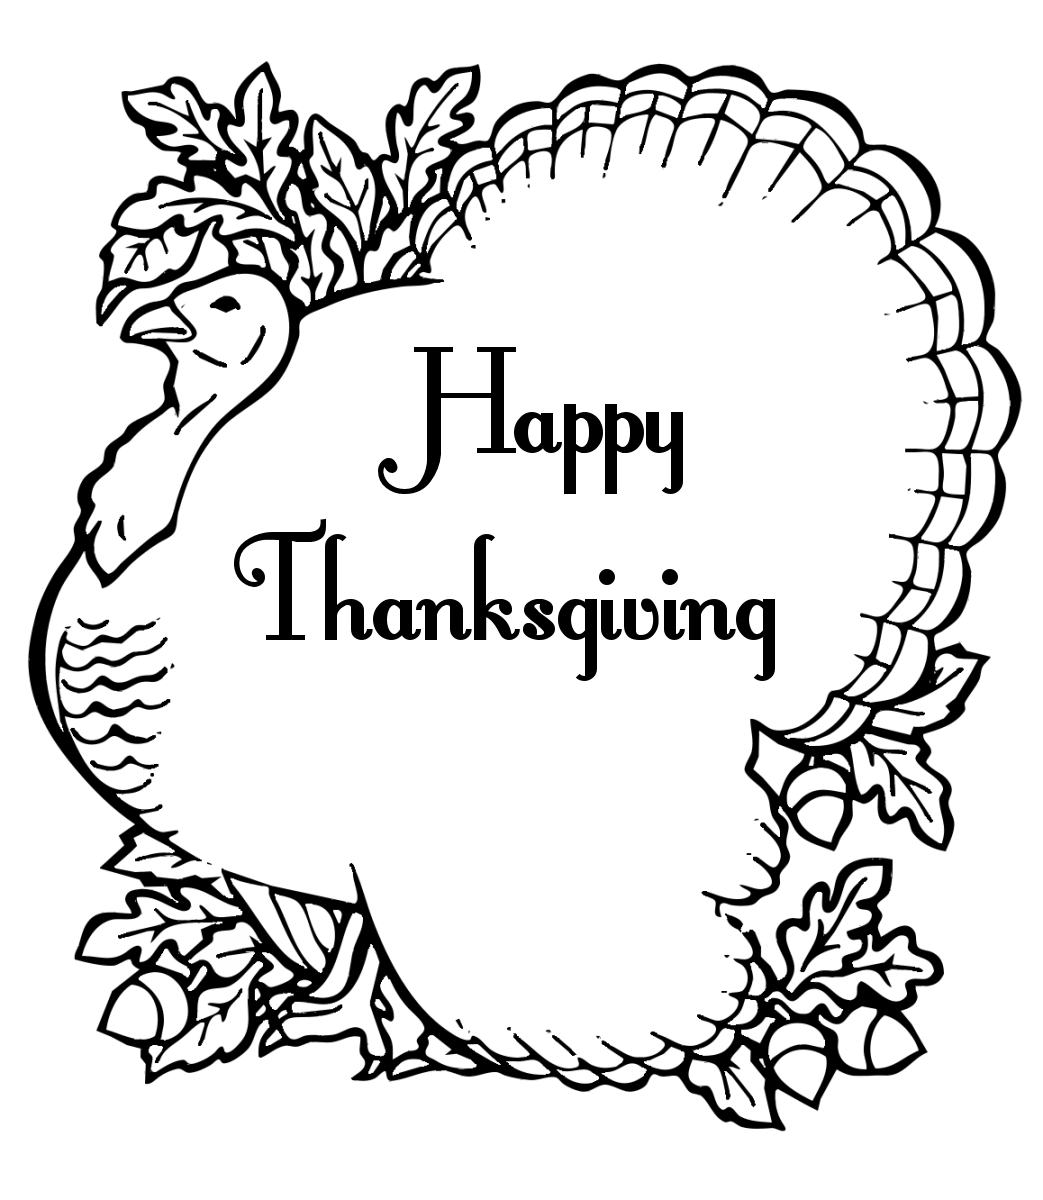 Free Thanksgiving Clipart. Search Terms: black and white ...